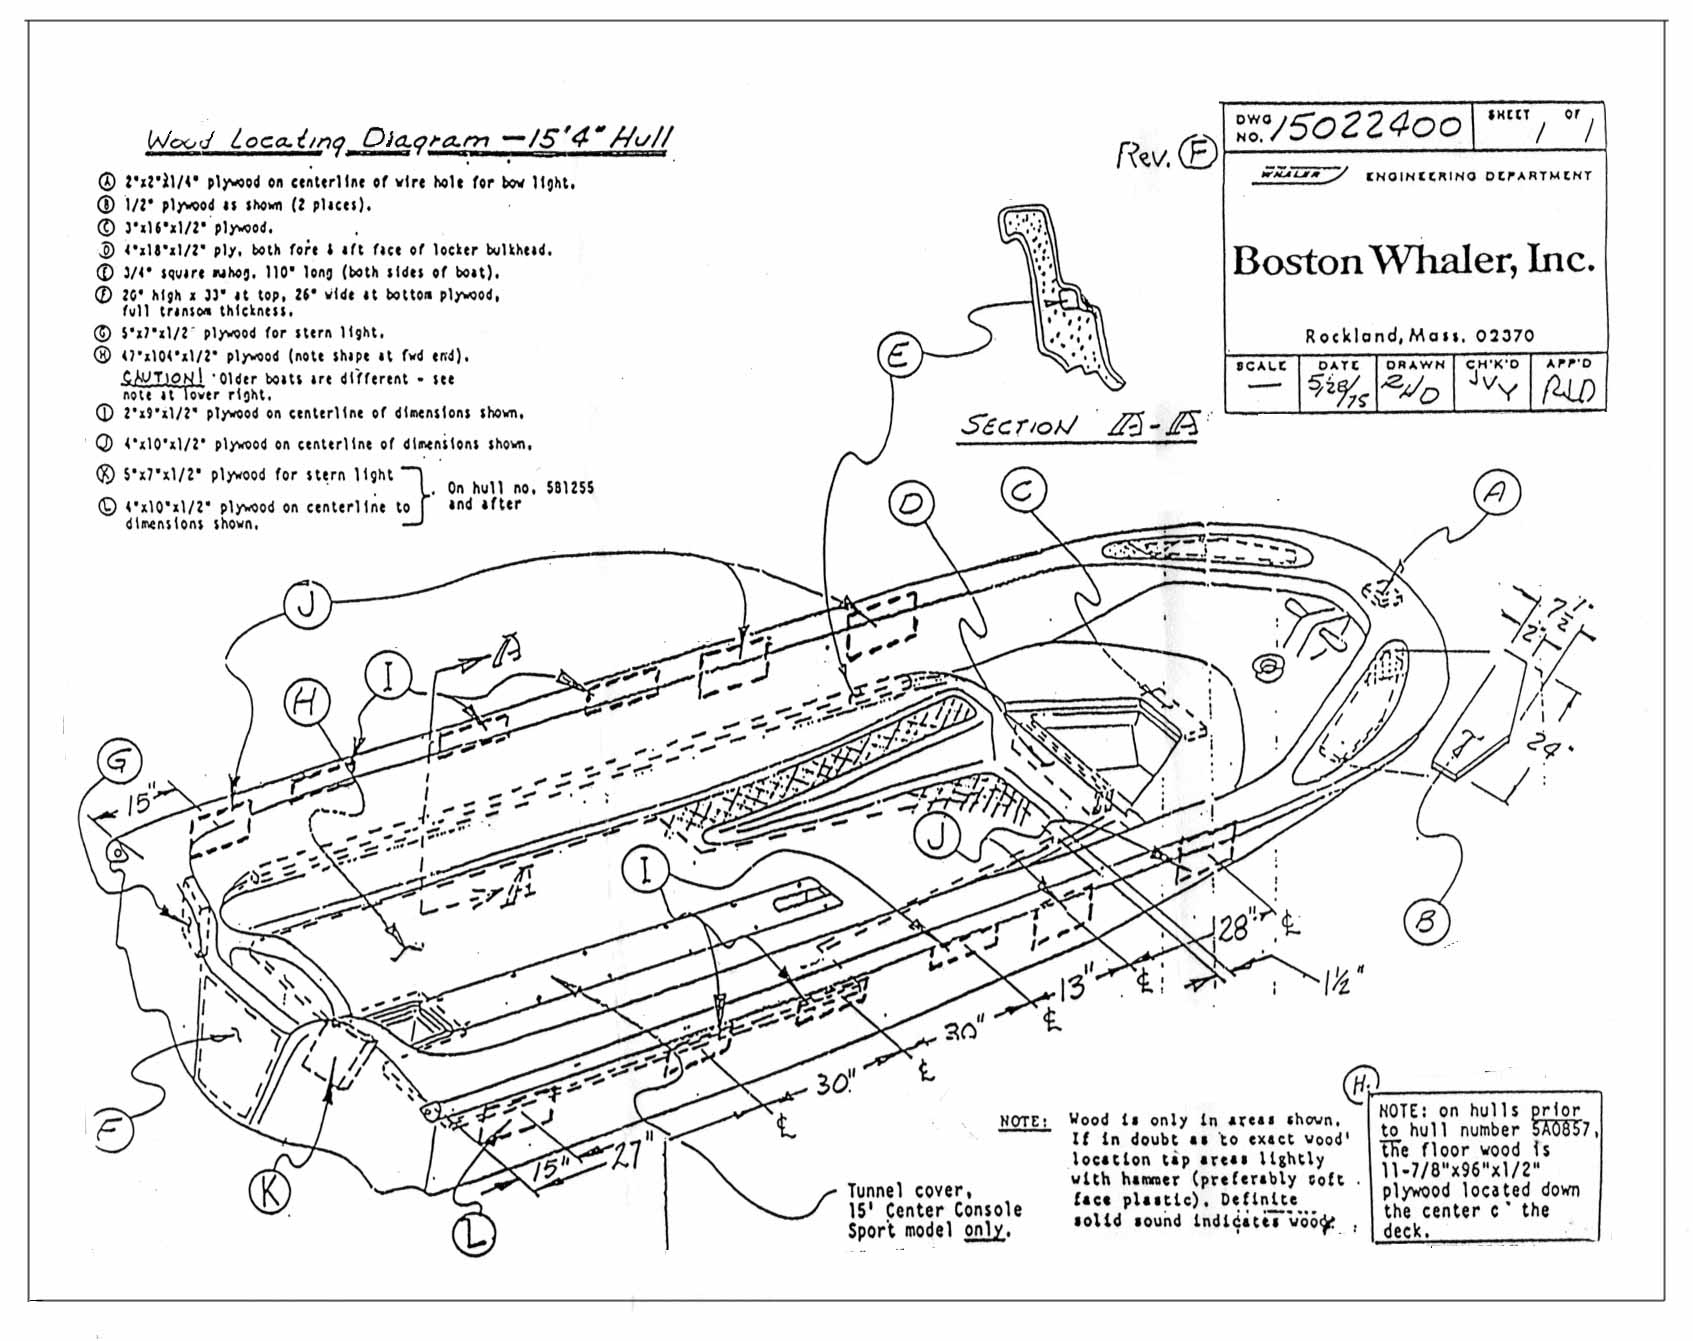 boat plans and dimensions drawings software